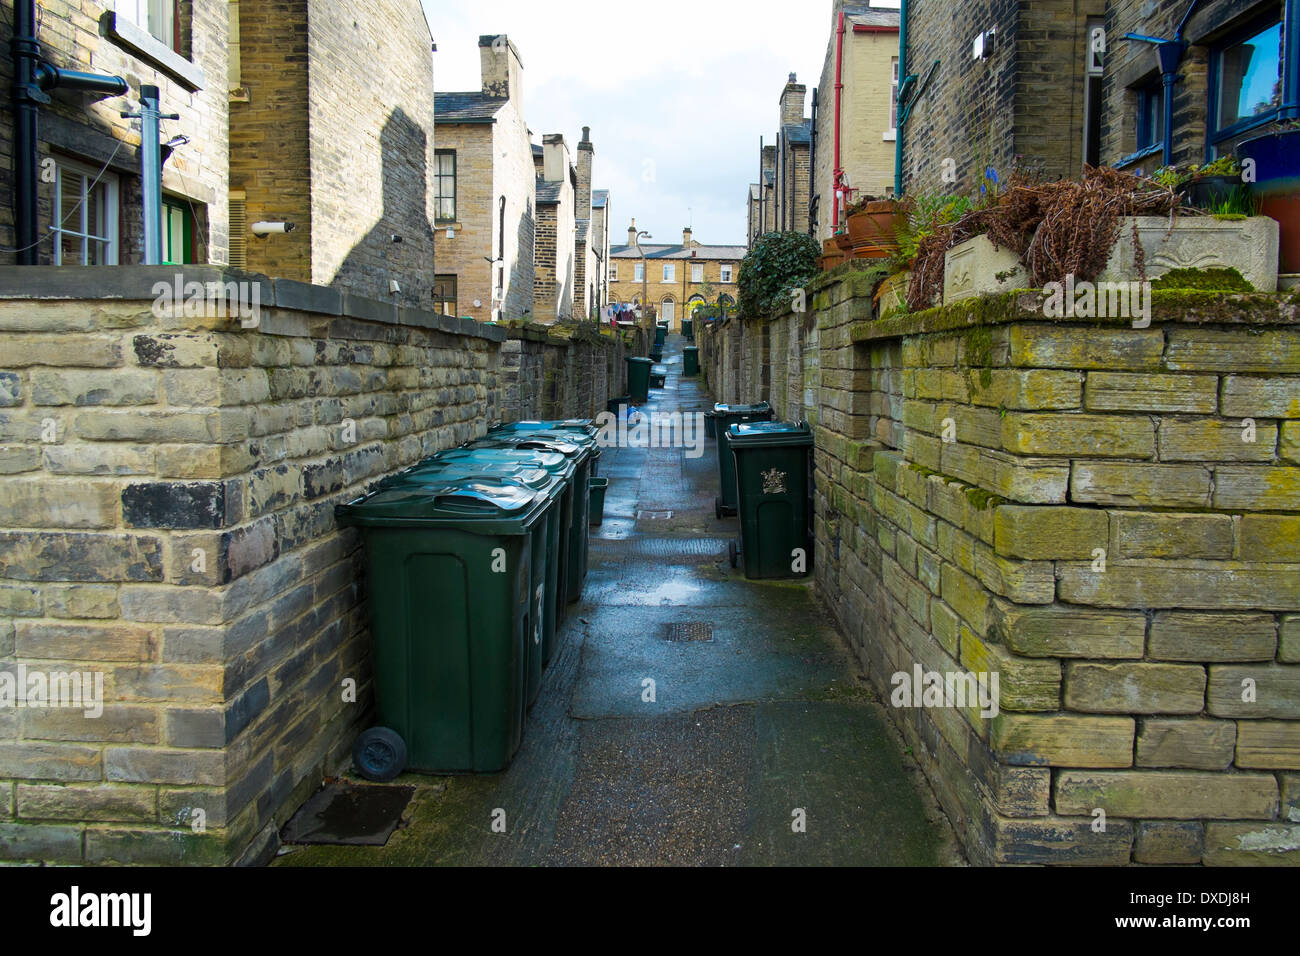 Rubbish bins outisde houses built for the workers at Salt's Mill, Saltaire, Bradford, Yorkshire, England. - Stock Image